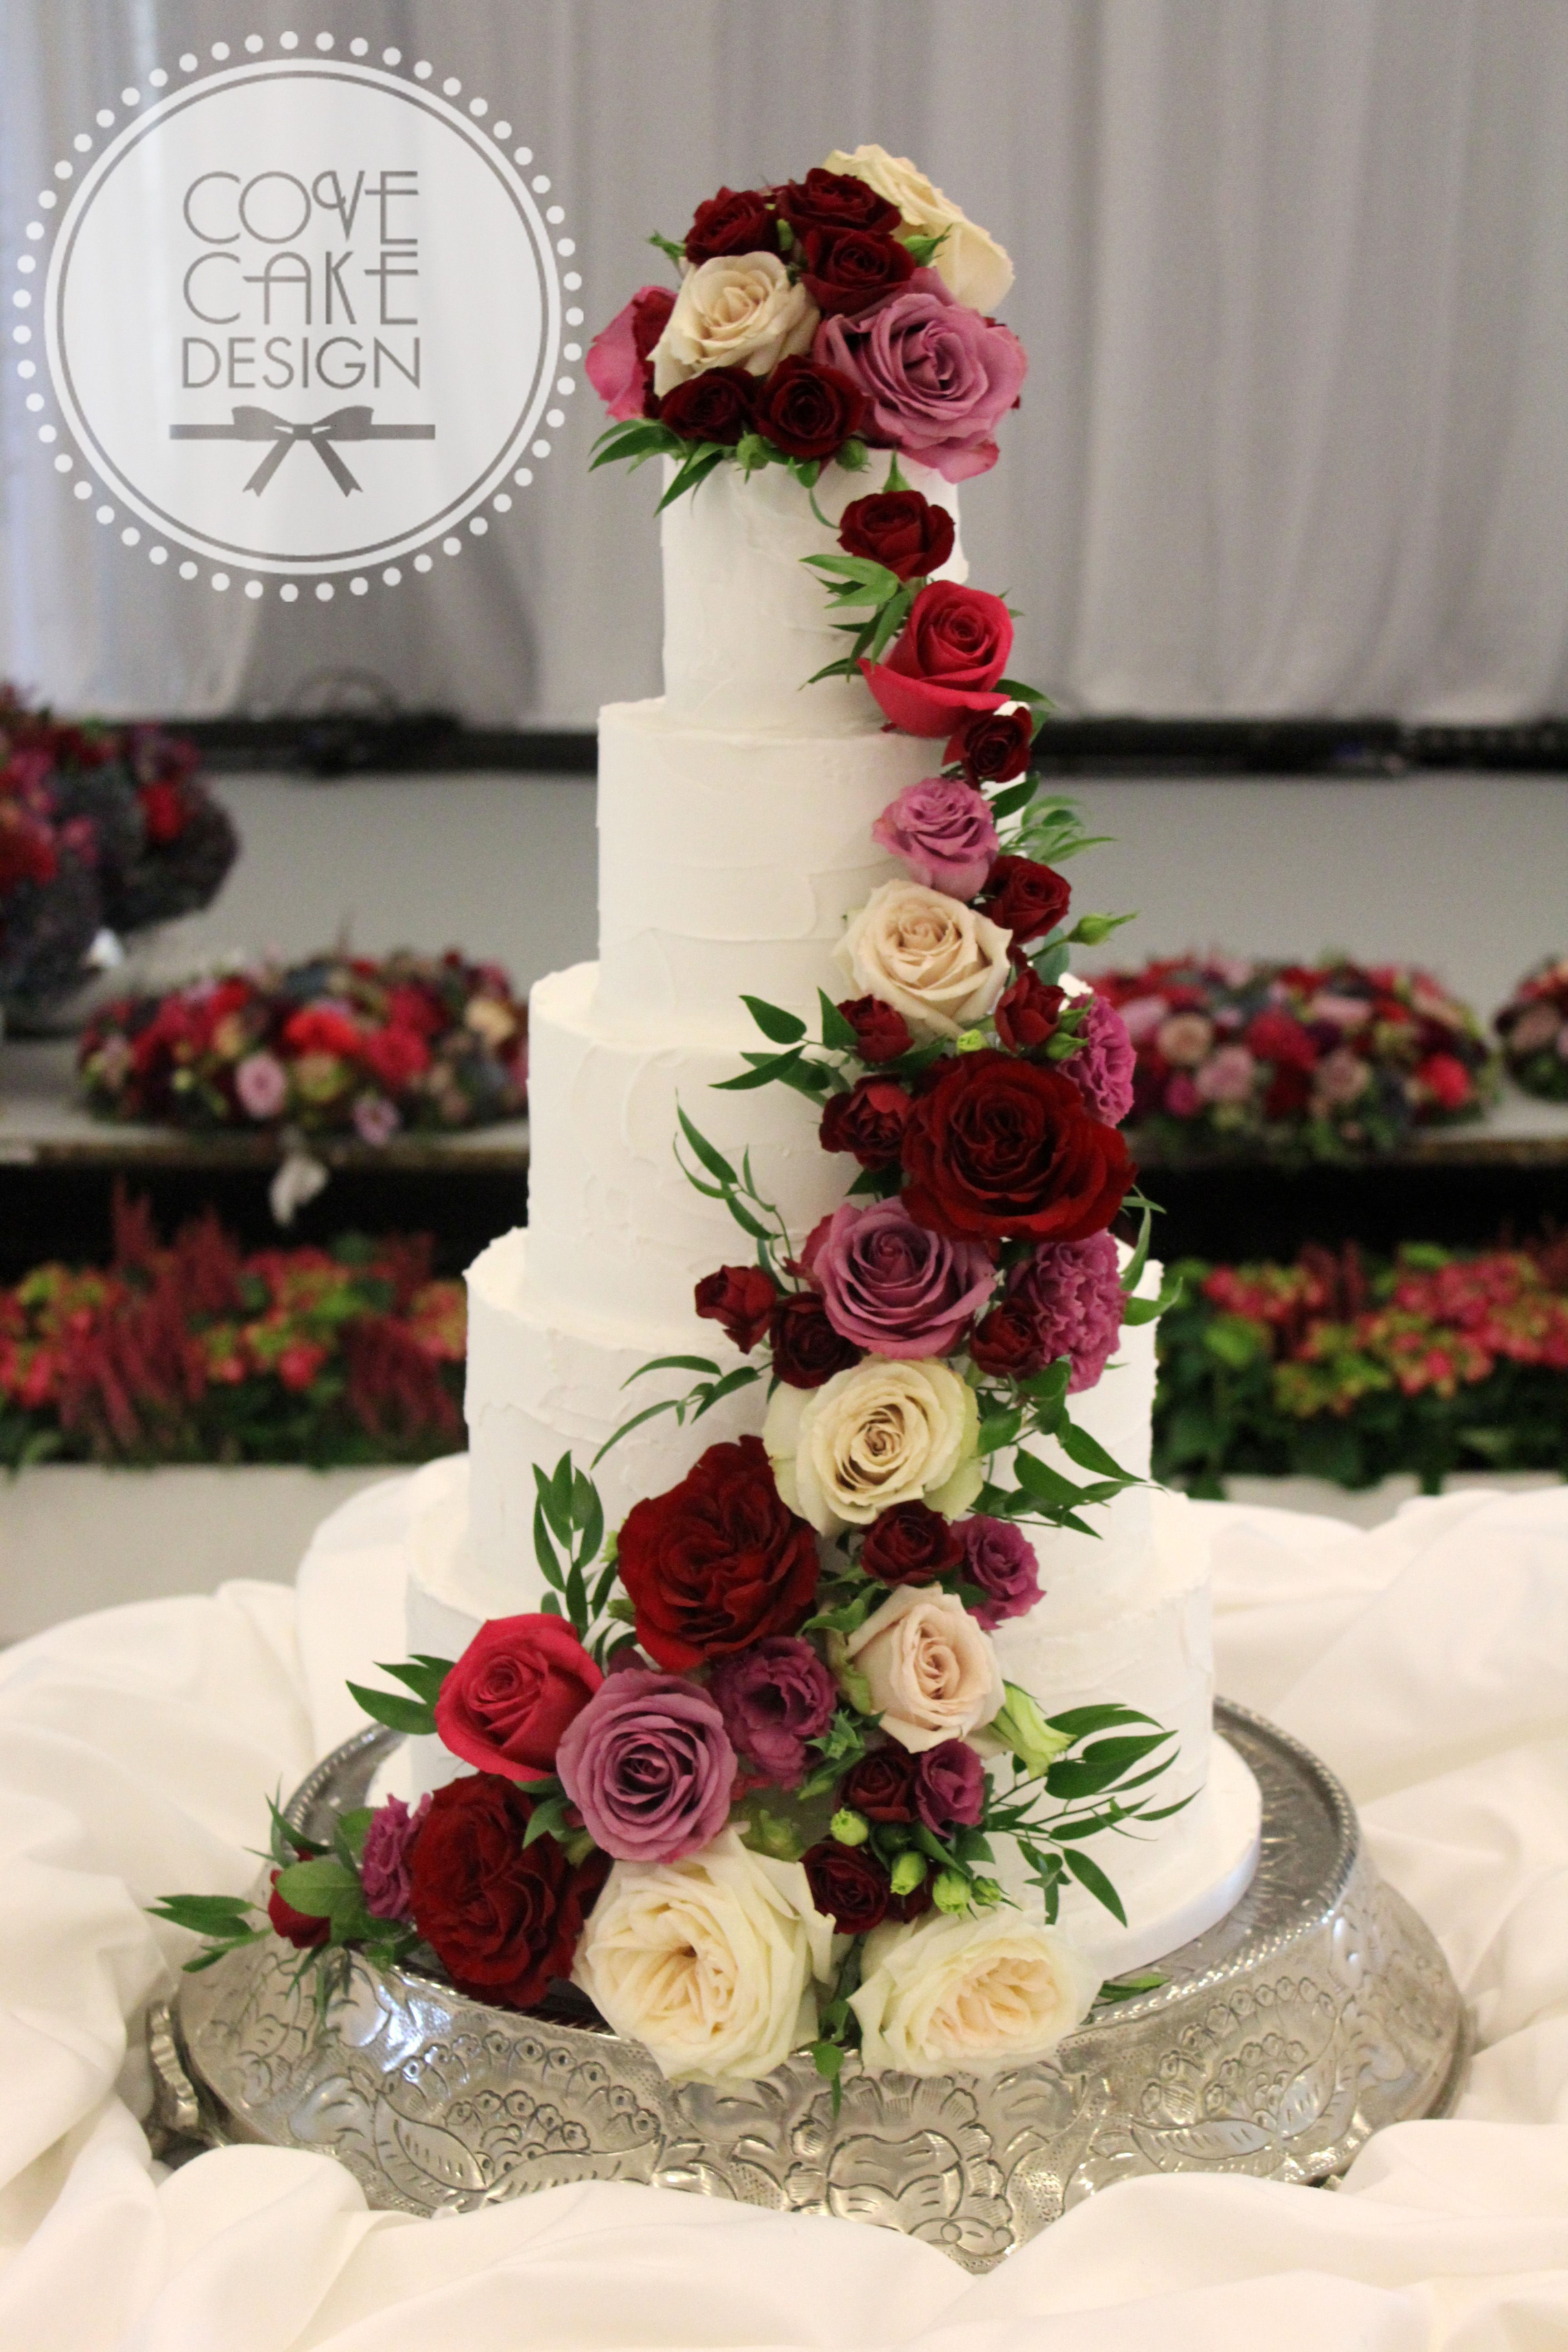 Rustic White Iced Wedding Cake With Fresh Floral Cascade In Shades